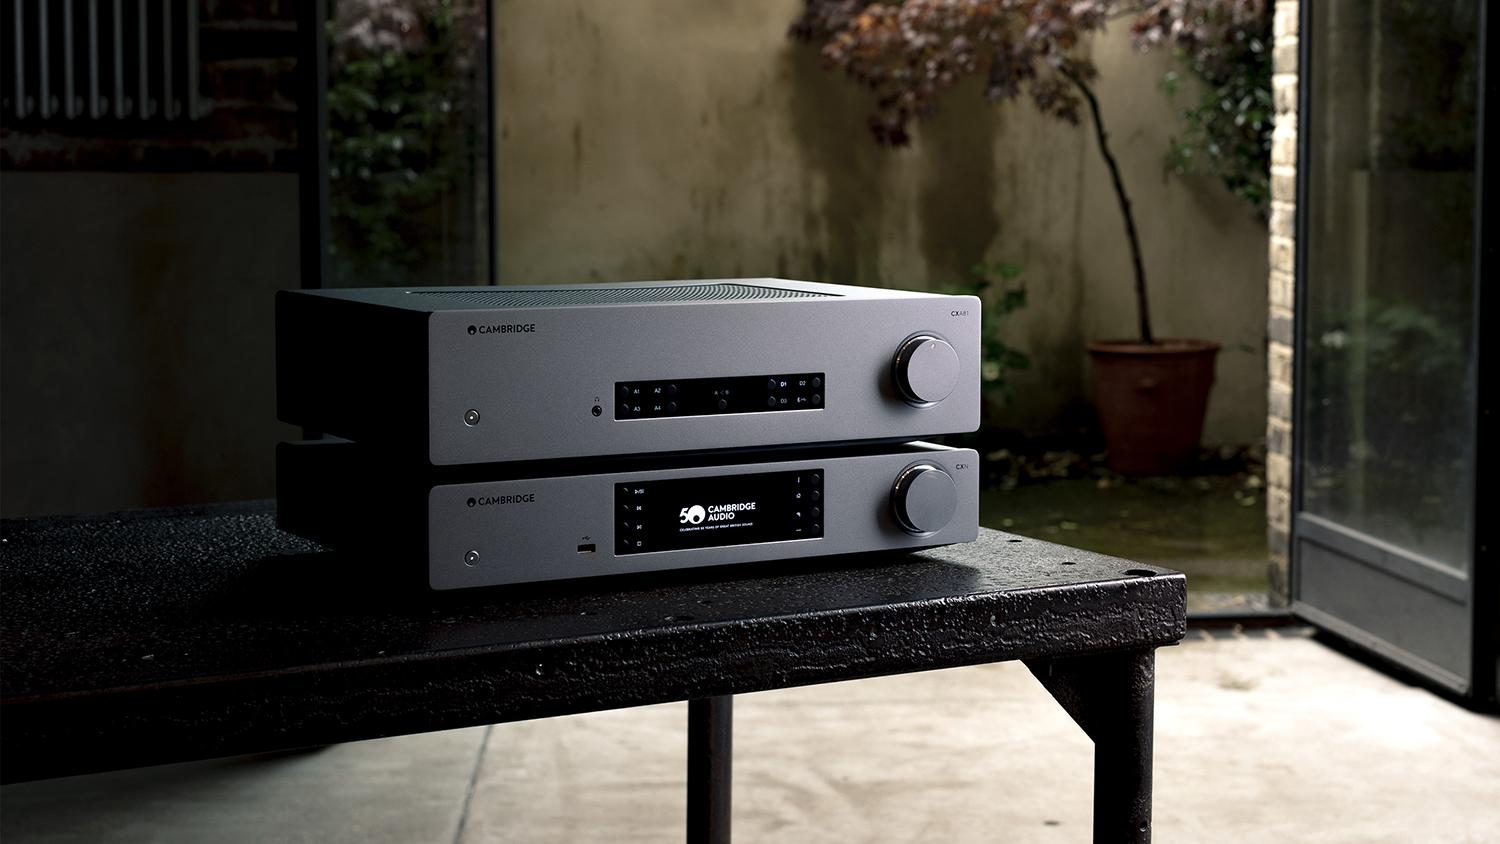 CXA81 amplifier and CXN streamer stack on table